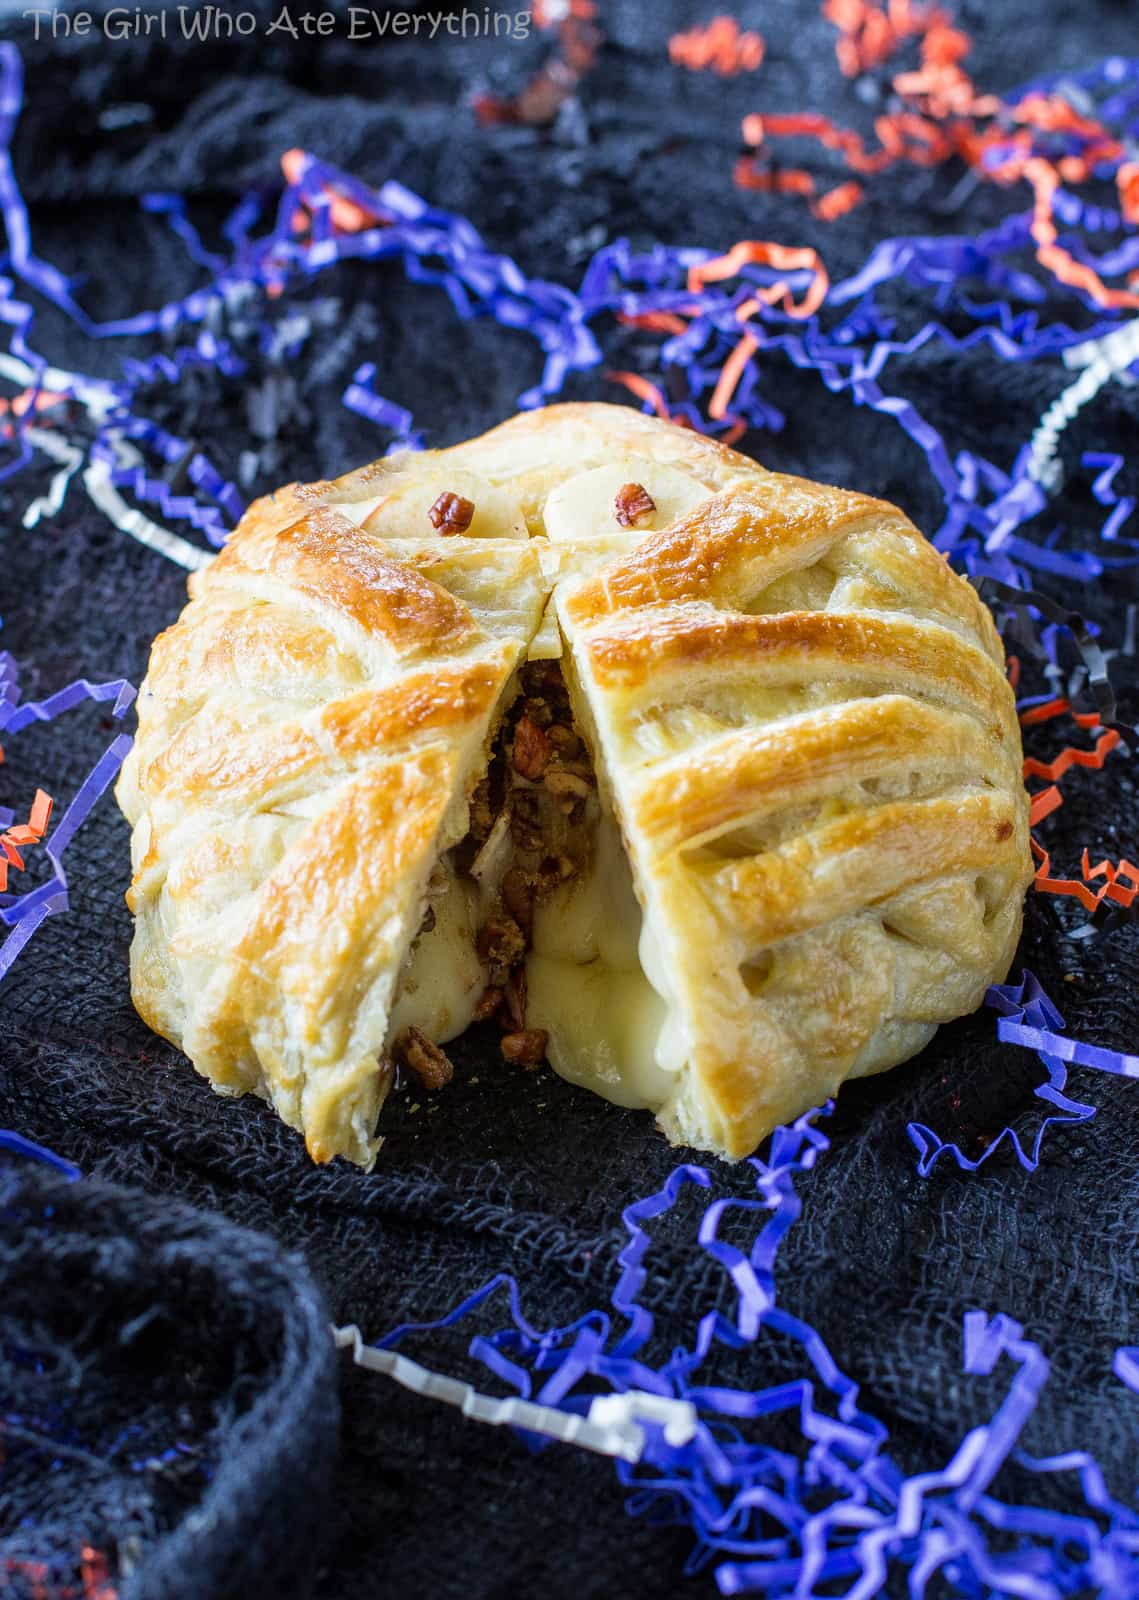 Mummy Wrapped Brie - topped with brown sugar and cinnamon pecans, baked inside puff pastry until nice and gooey. The best appetizer for Halloween! the-girl-who-ate-everything.com